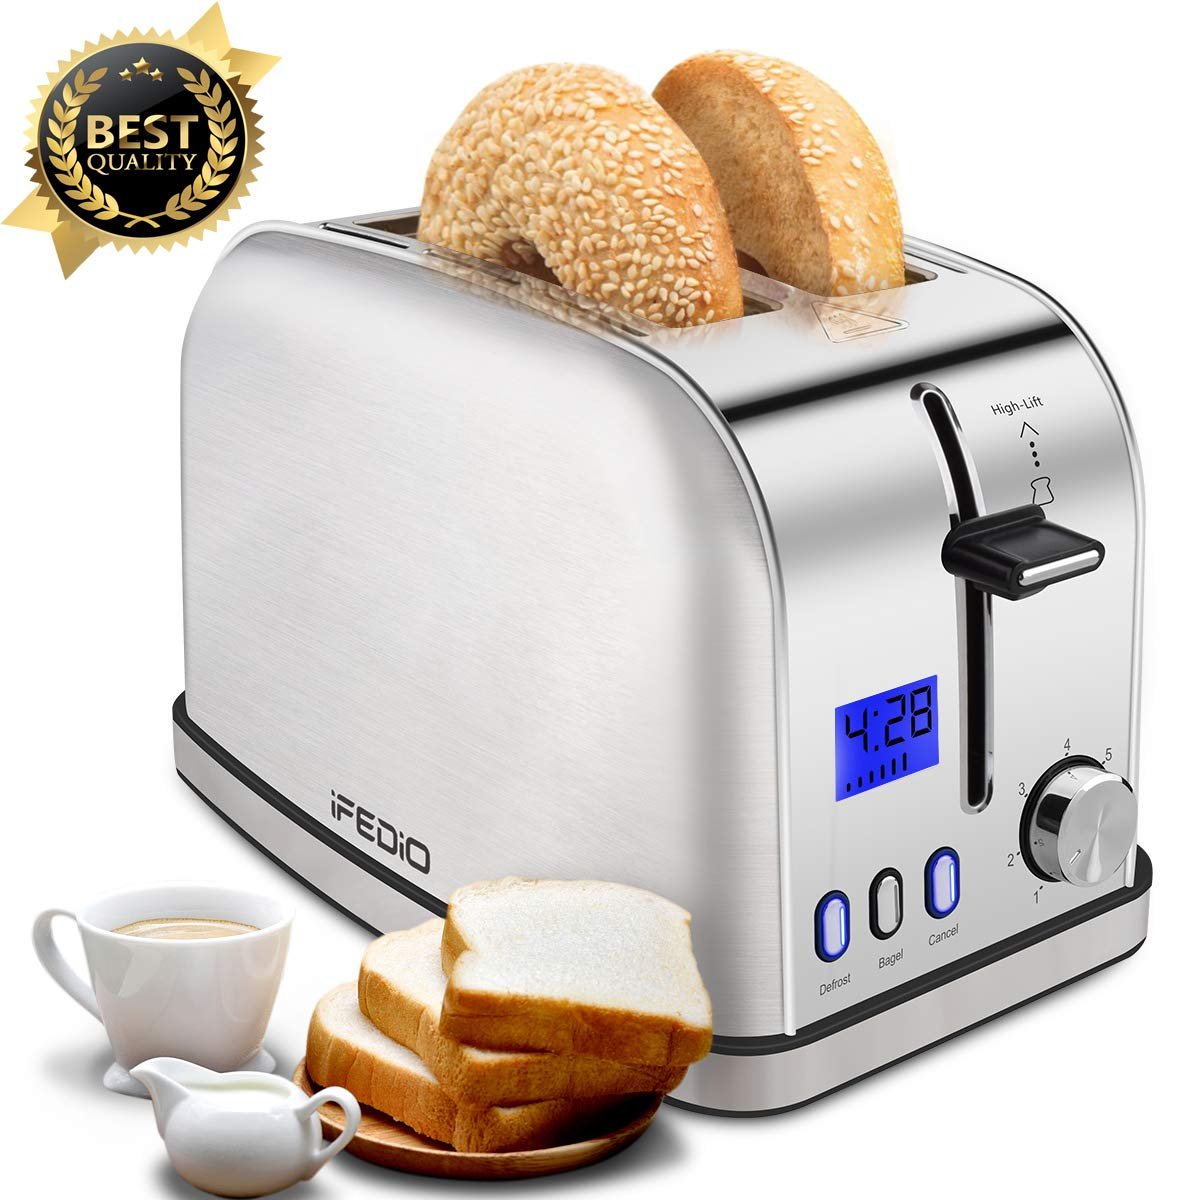 Best Kenmore Microwave Toaster Oven Combo - Home Gadgets